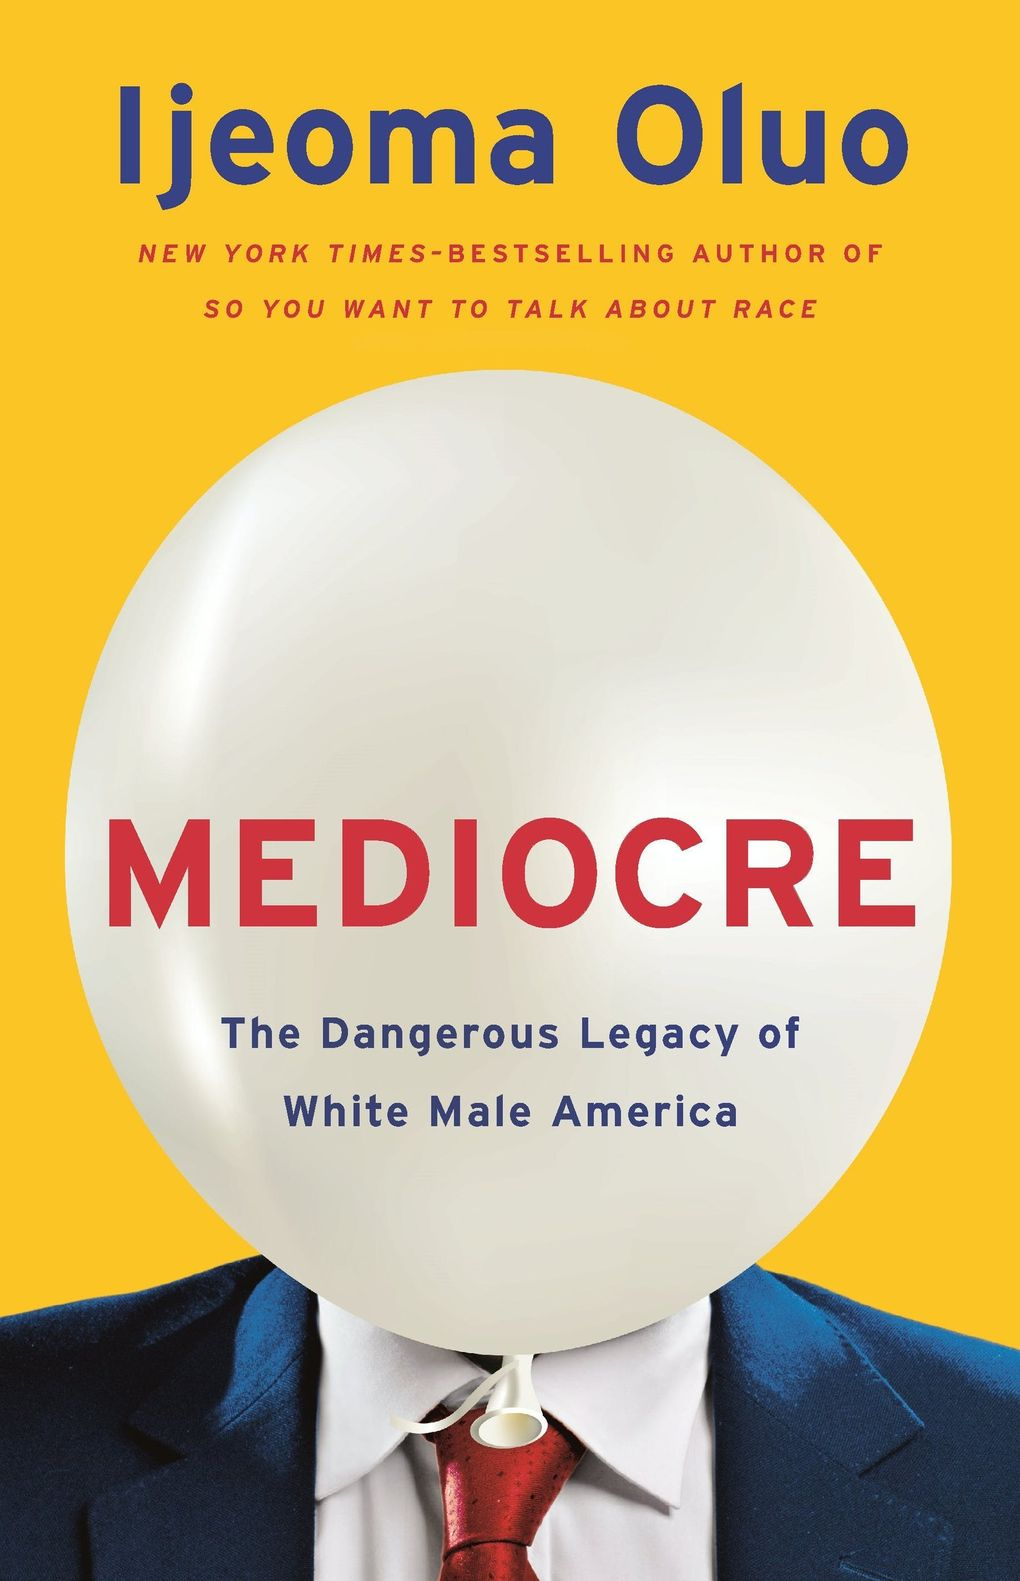 """""""Mediocre: The Dangerous Legacy of White Male America"""" by Ijeoma Oluo (Seal Press)"""